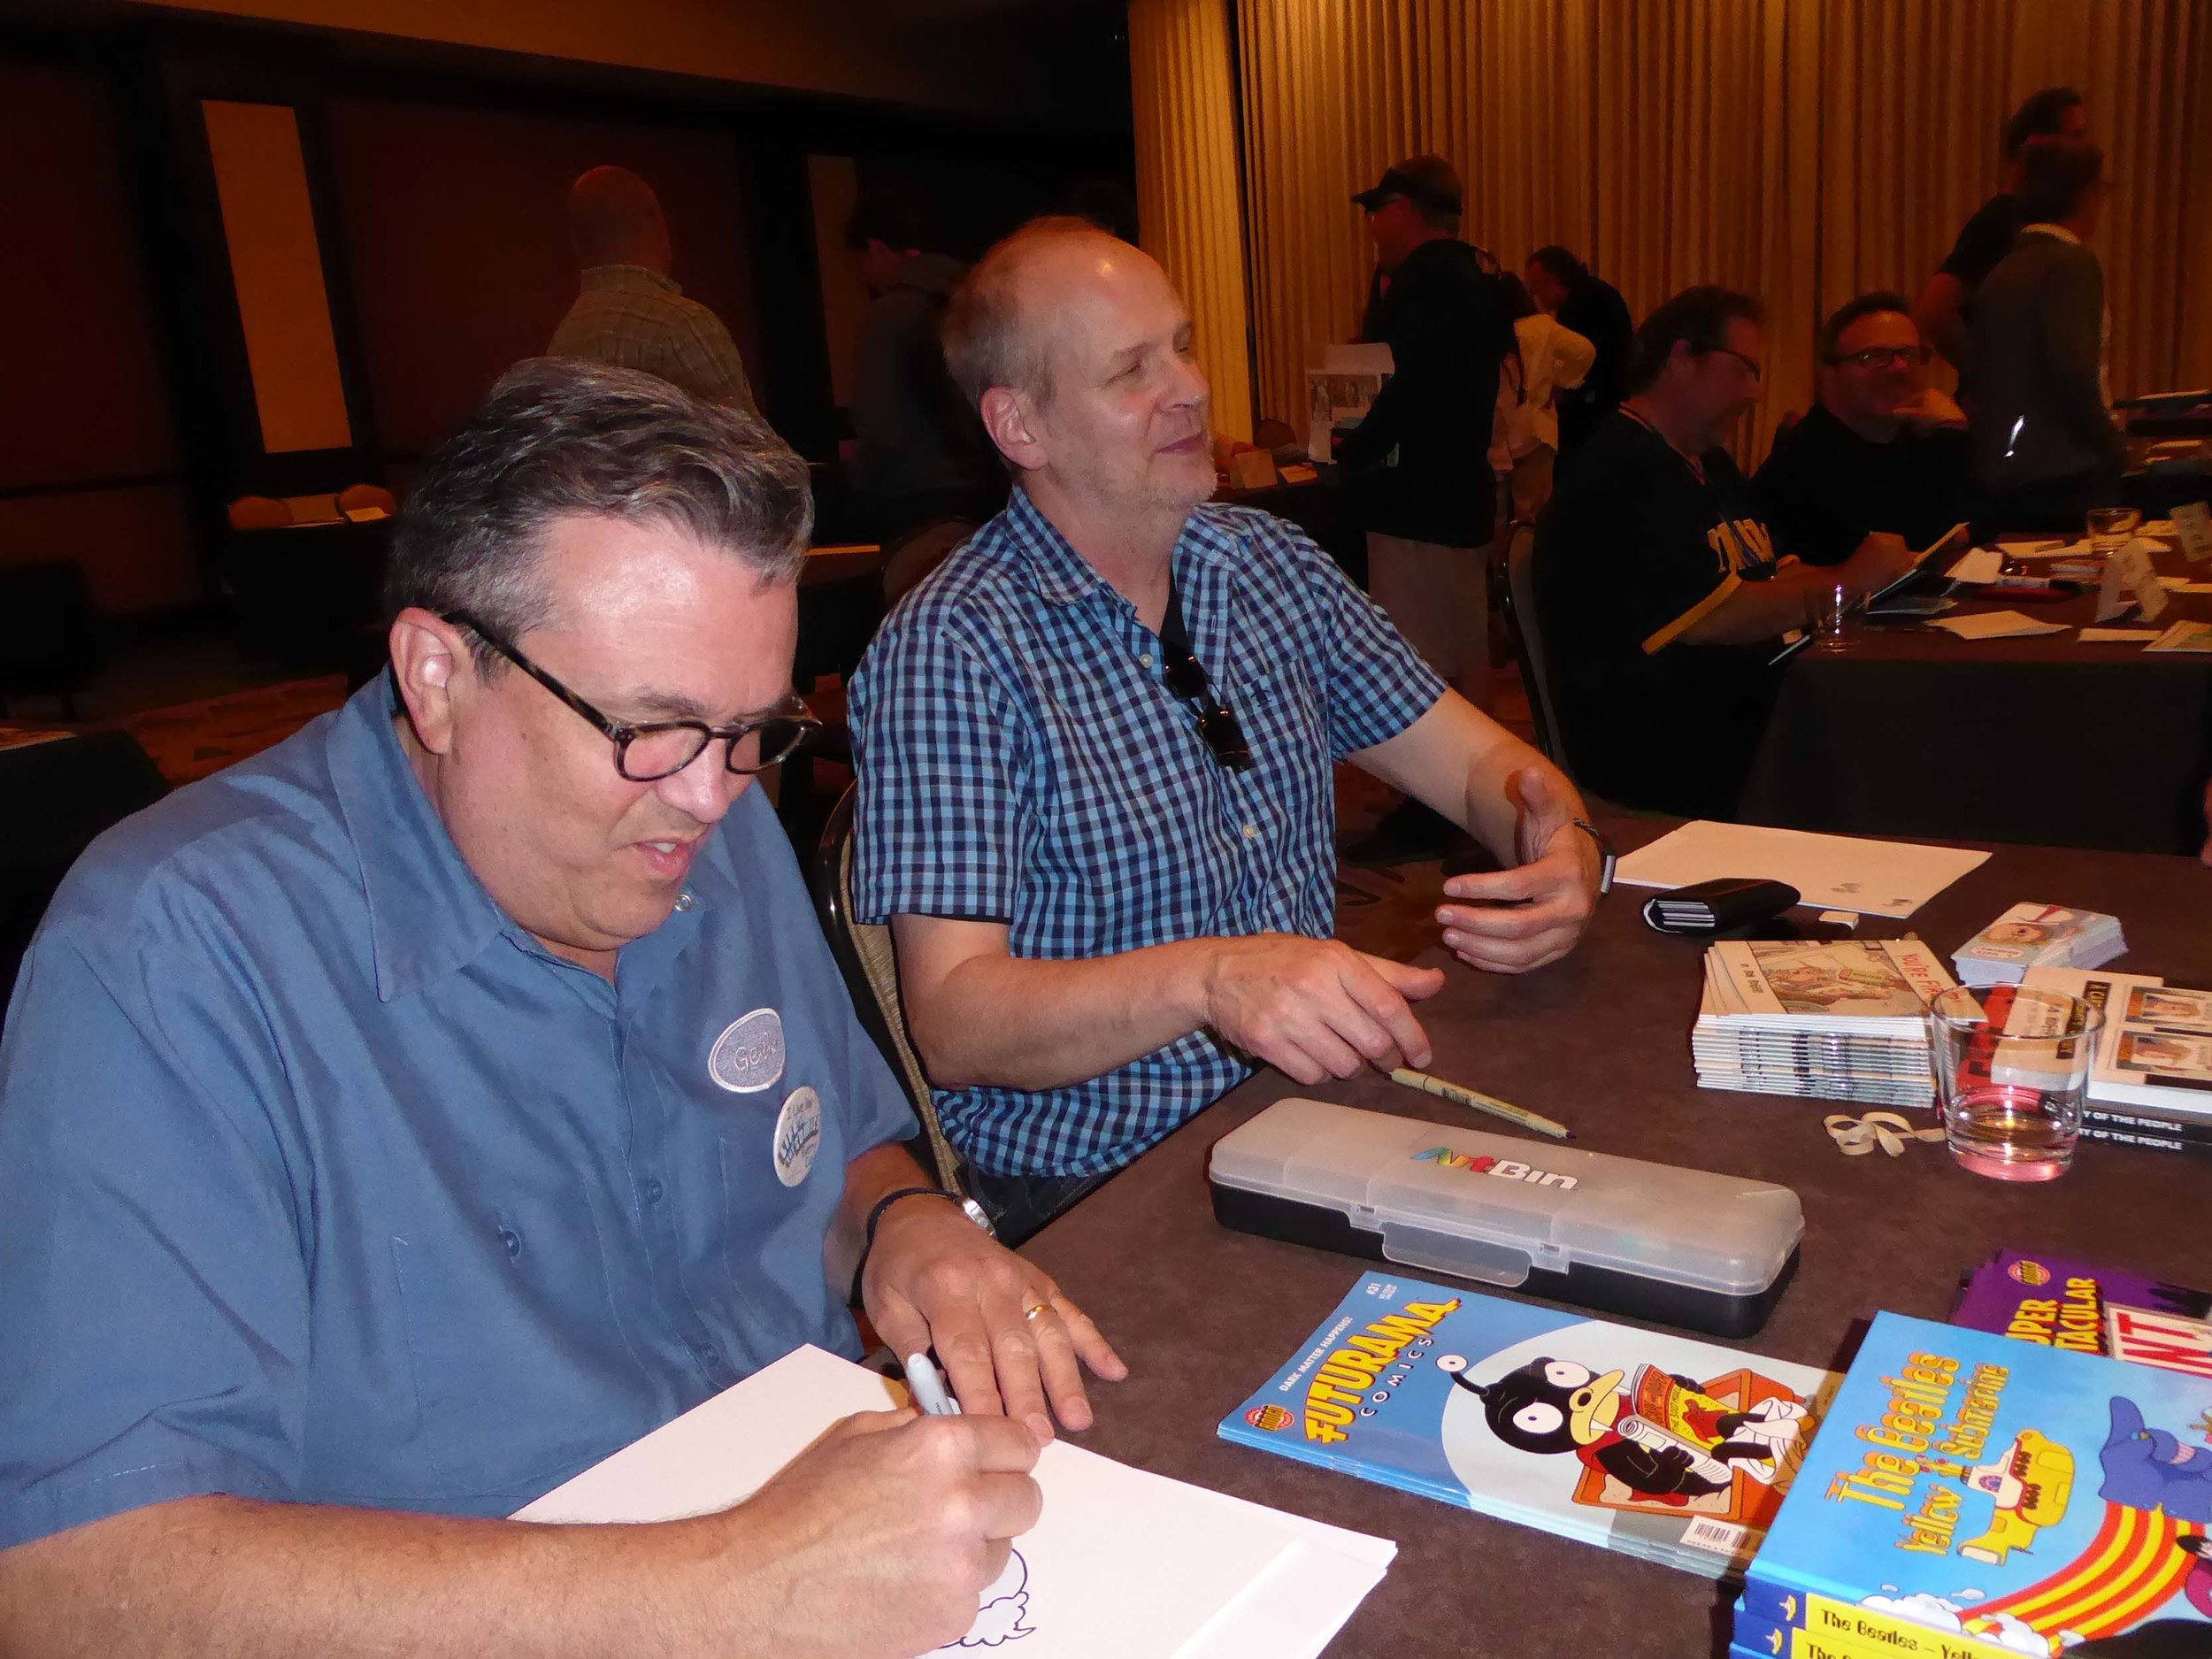 Bill Morrison (left) and Rob Rogers